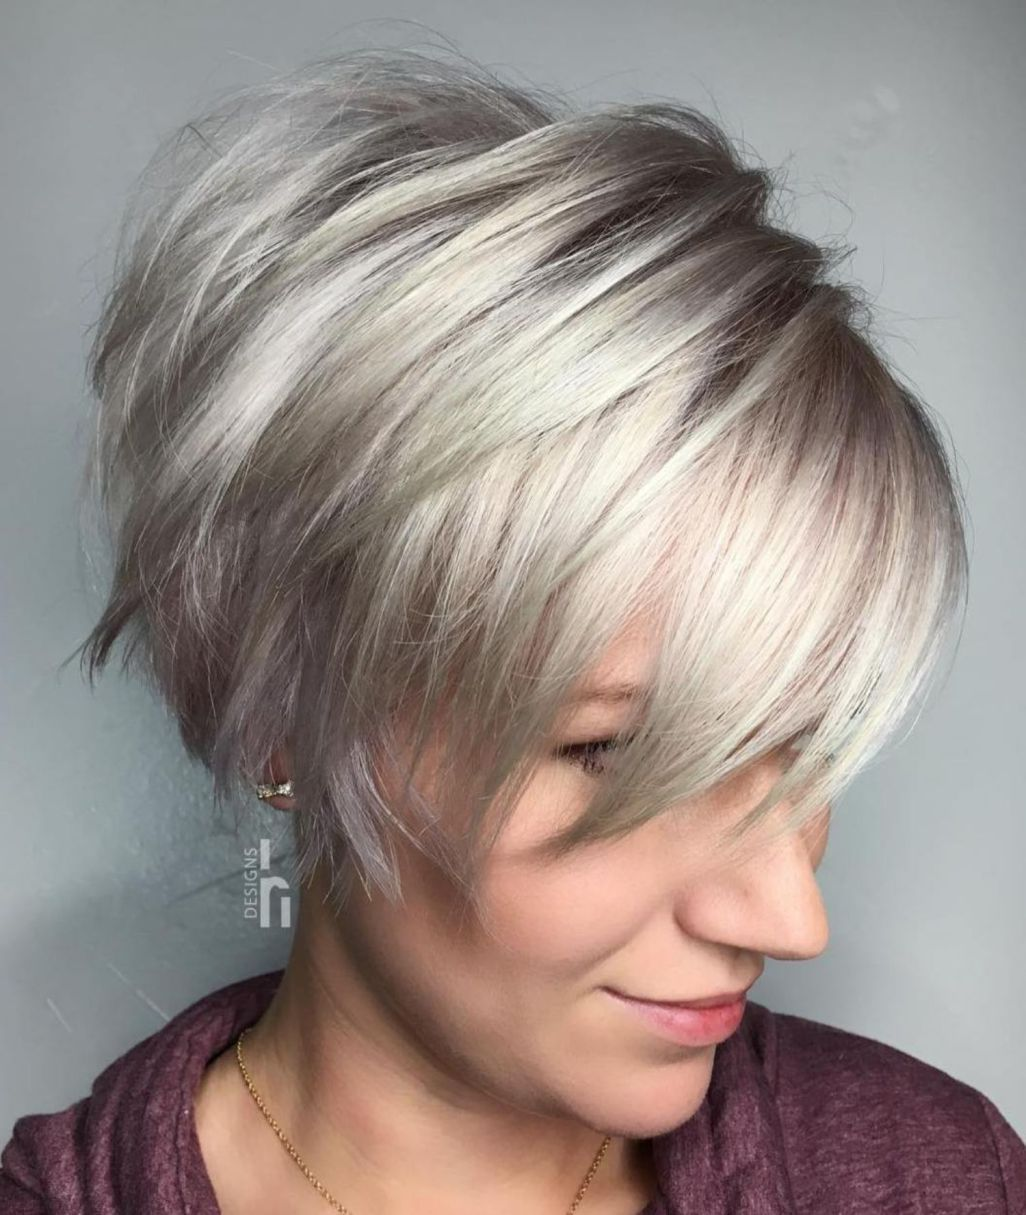 60 Gorgeous Long Pixie Hairstyles Longer Pixie Haircut Long Pixie Hairstyles Short Hair With Layers